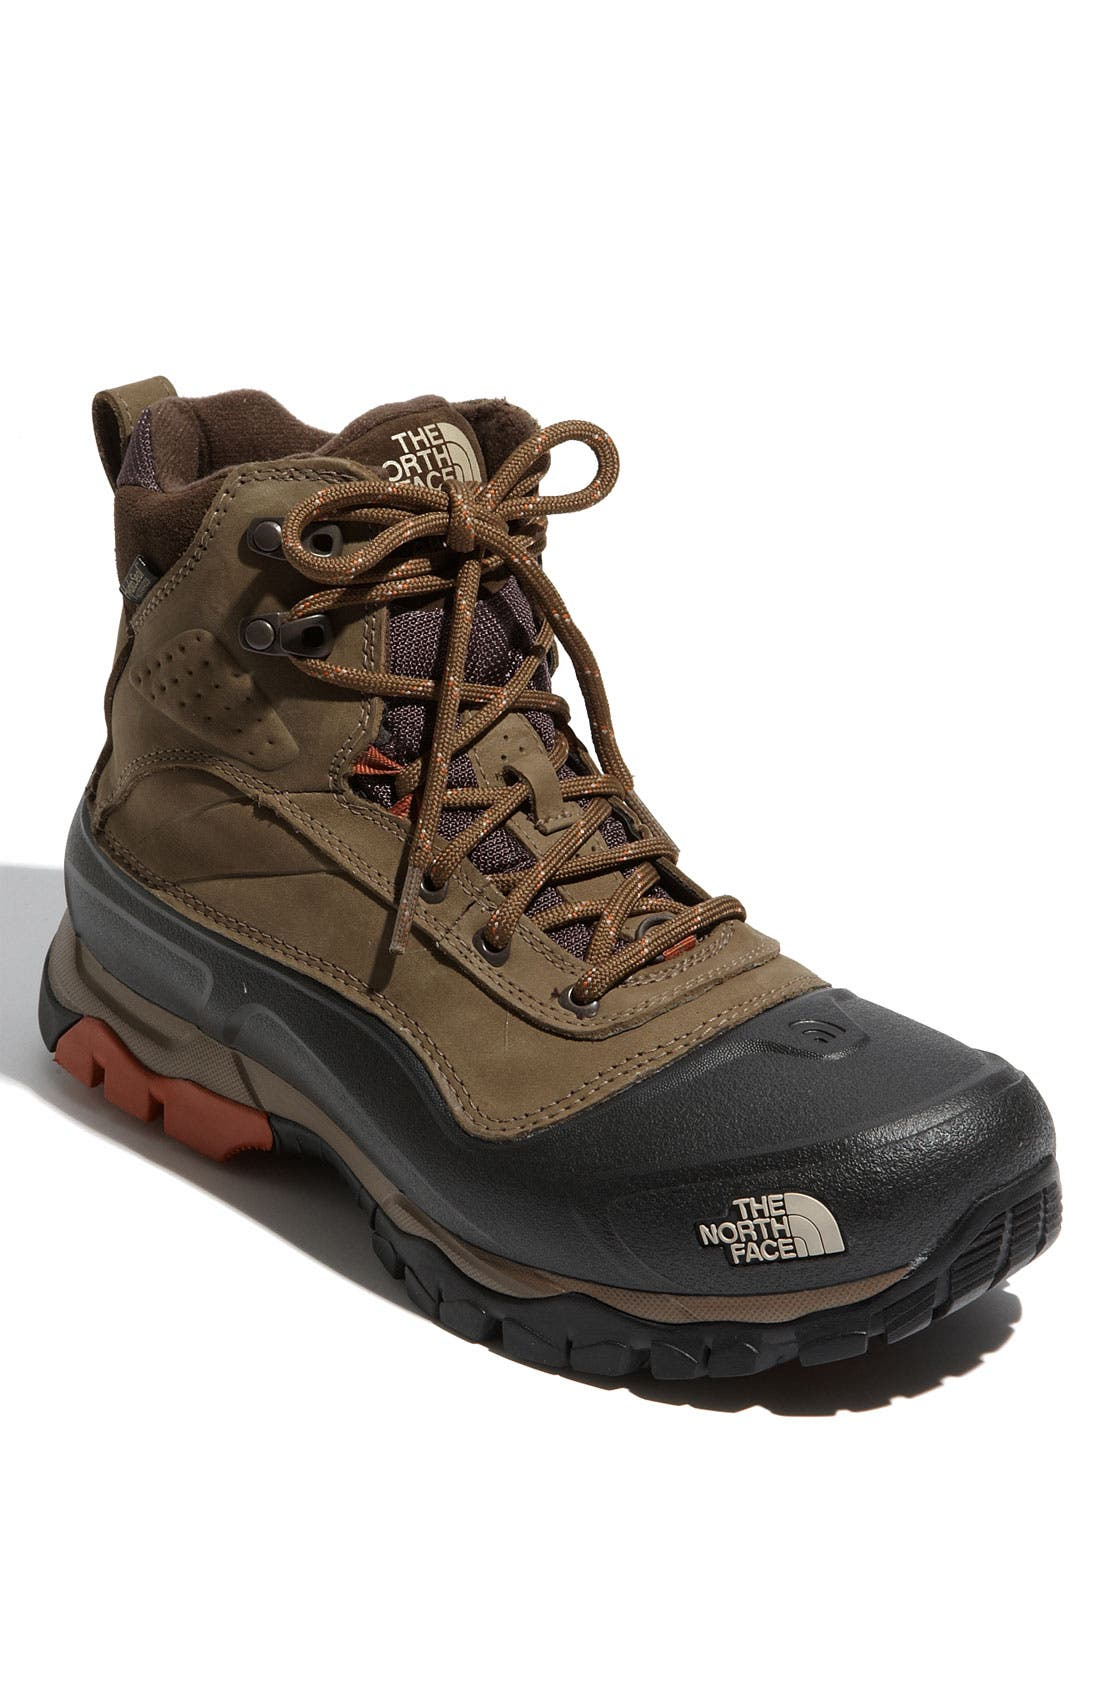 Main Image - The North Face 'Snow-Chute' Boot